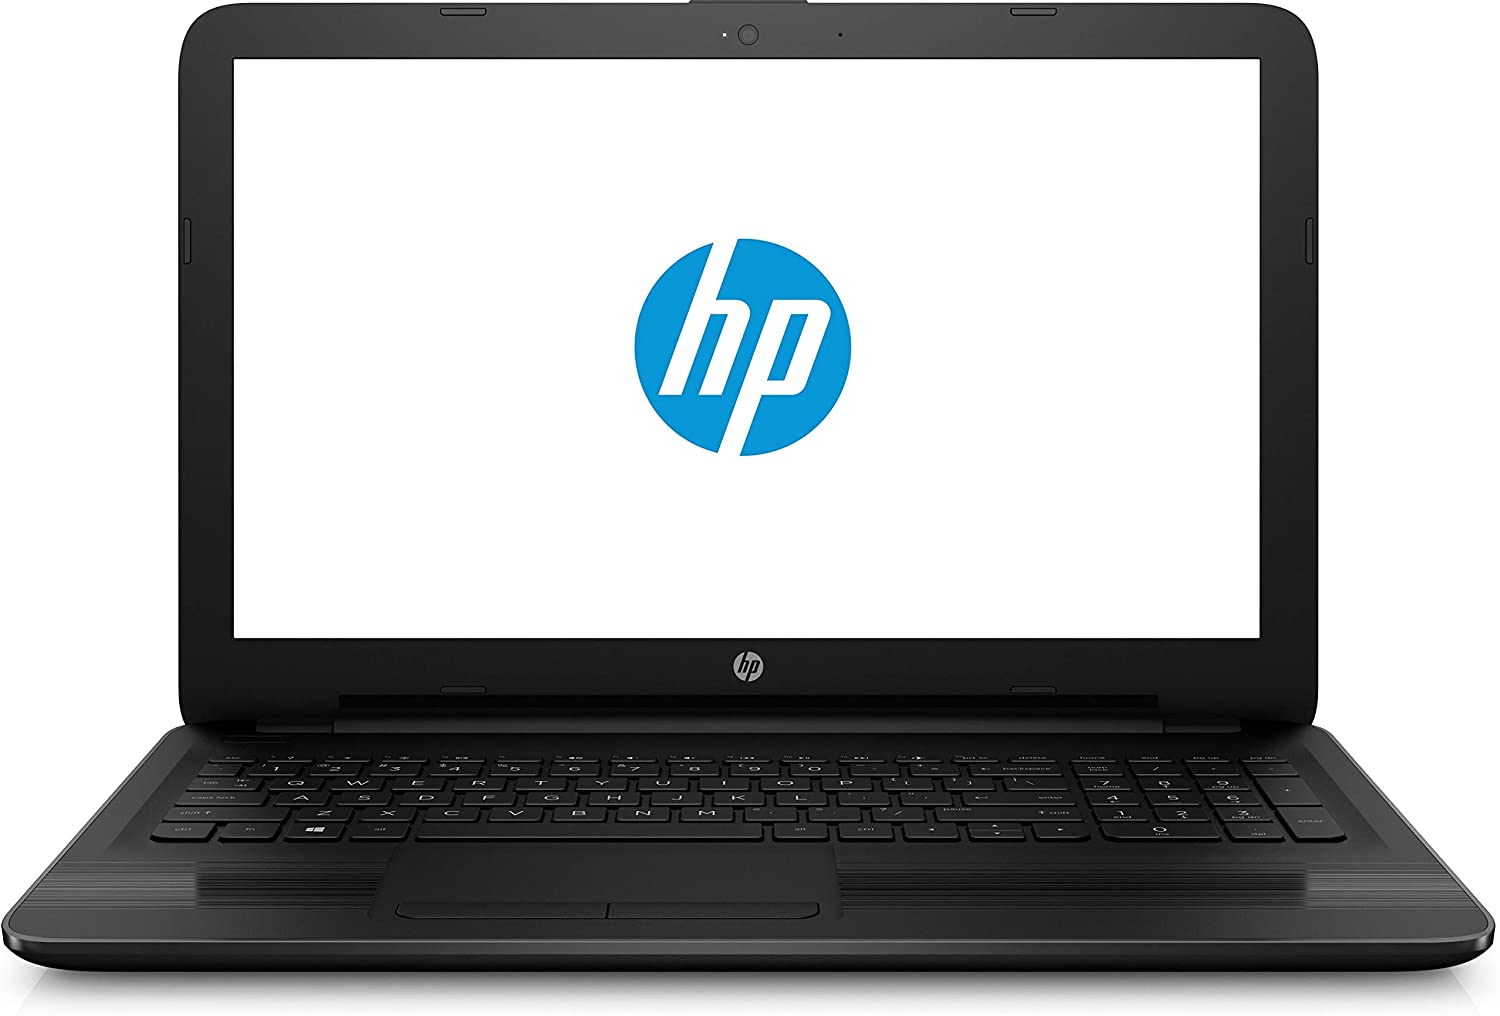 "High Performance HP 15.6"" Laptop, AMD A6-9225 Dual-Core Processor 2.60GHz, 4GB RAM, 1TB HDD, AMD Radeon R4 Graphics, DVD-RW, HDMI, Bluetooth, HDMI, Webcam, Windows 10"